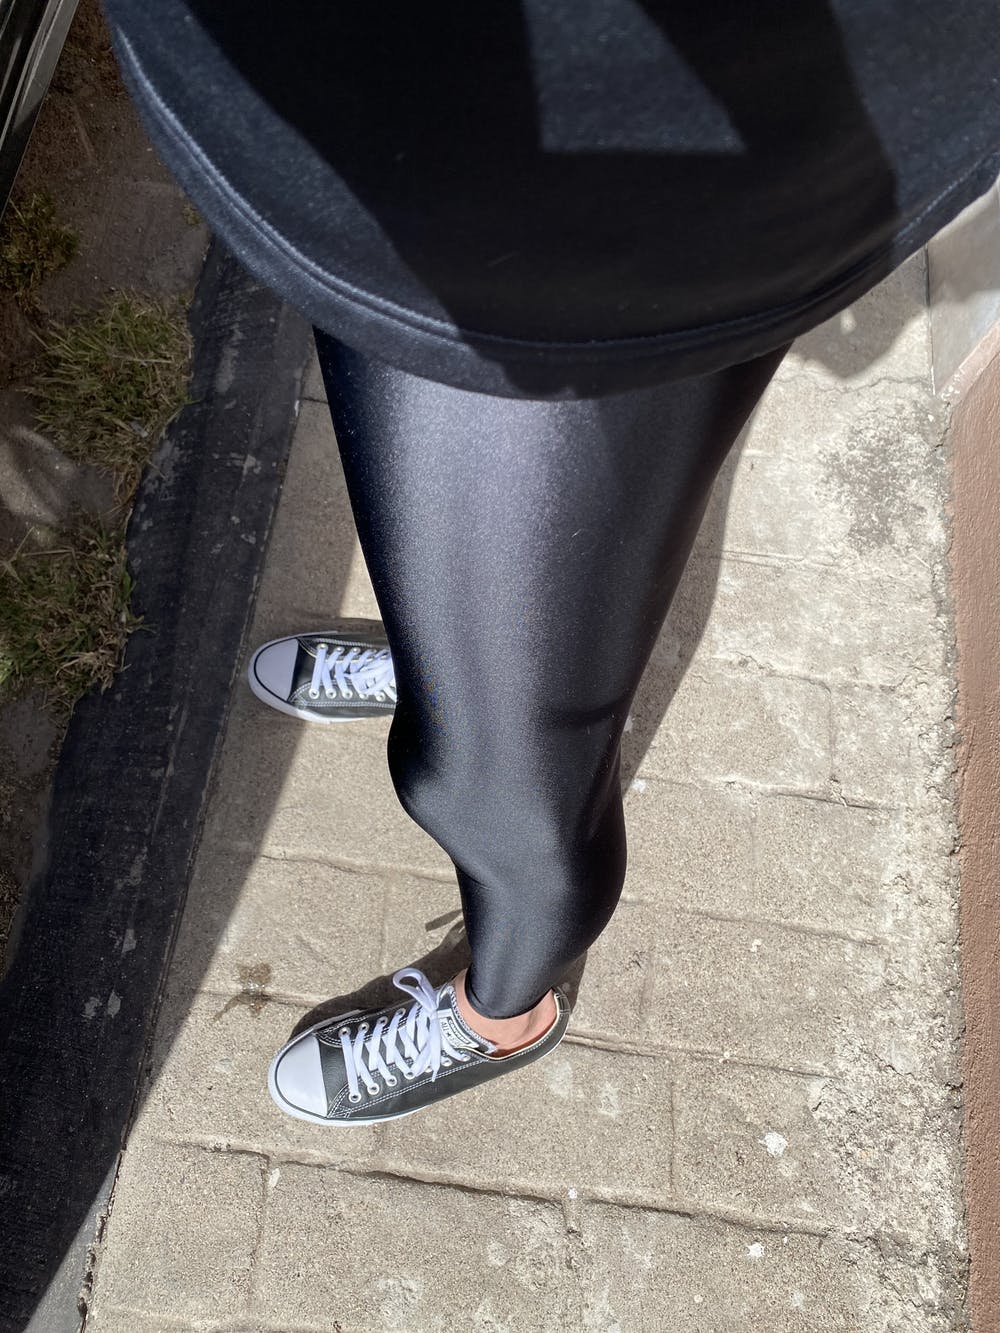 Shiny Spandex Workout Leggings